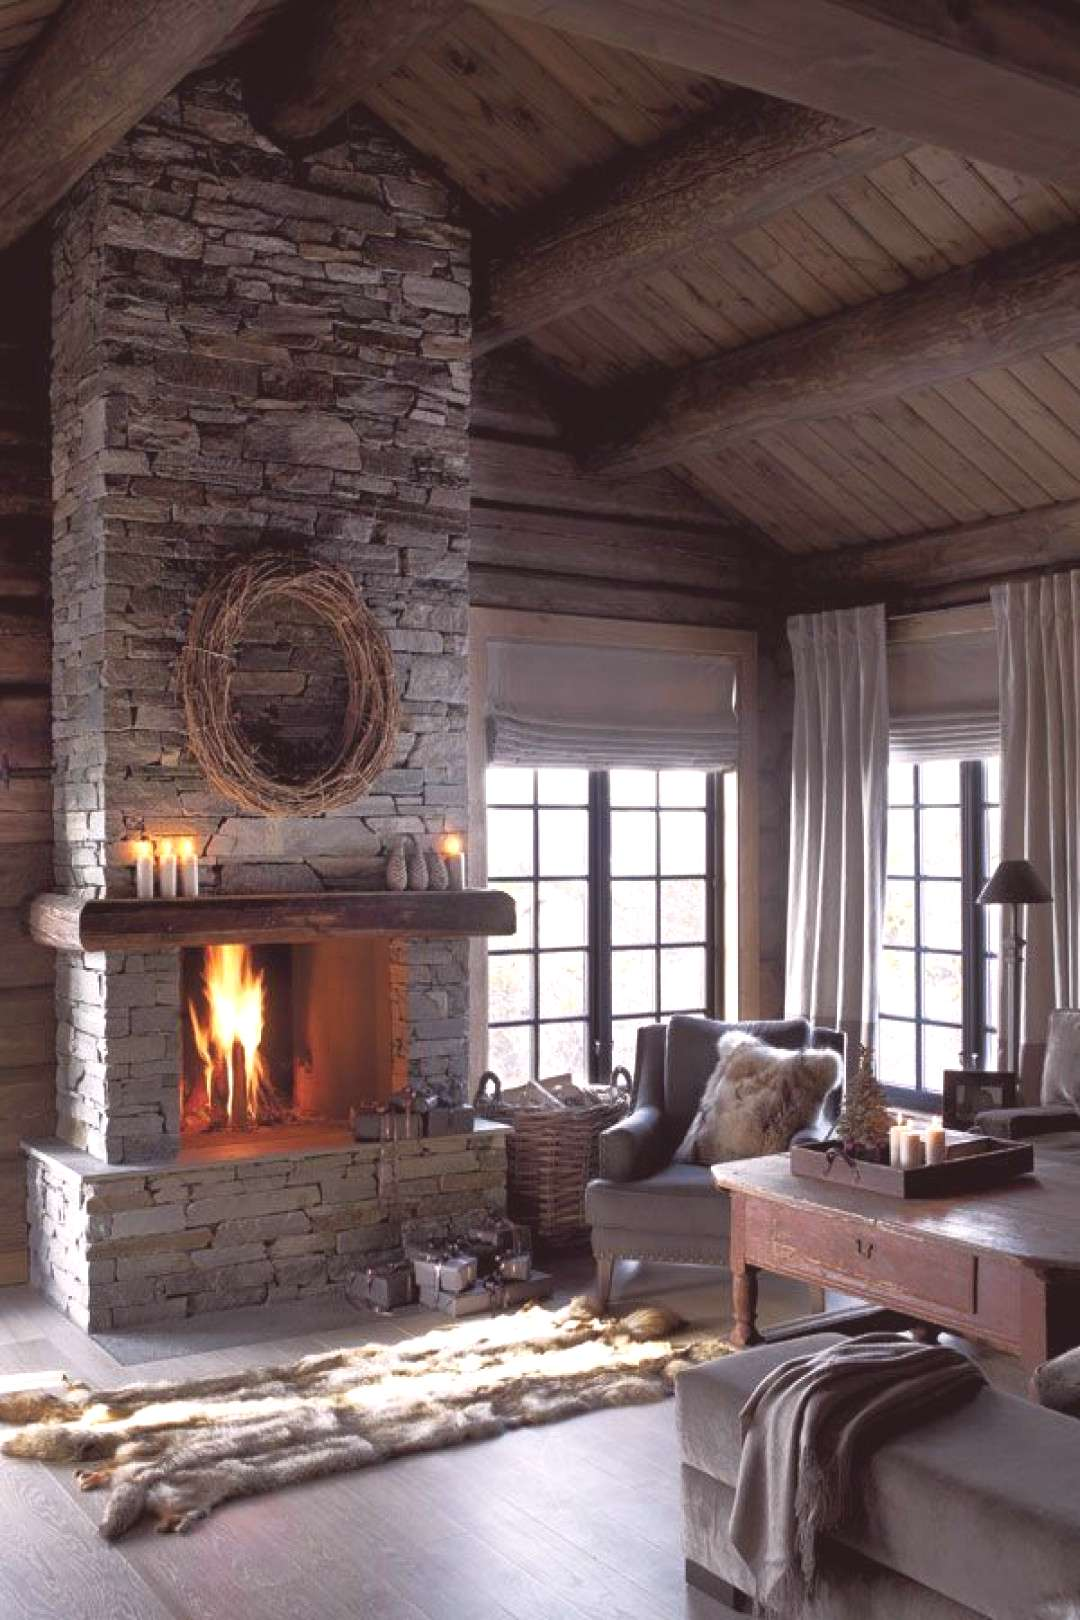 〚Cozy wooden fairy-tale house in Norway〛 ◾ Photo ◾ Ideas ◾ Design#cozy